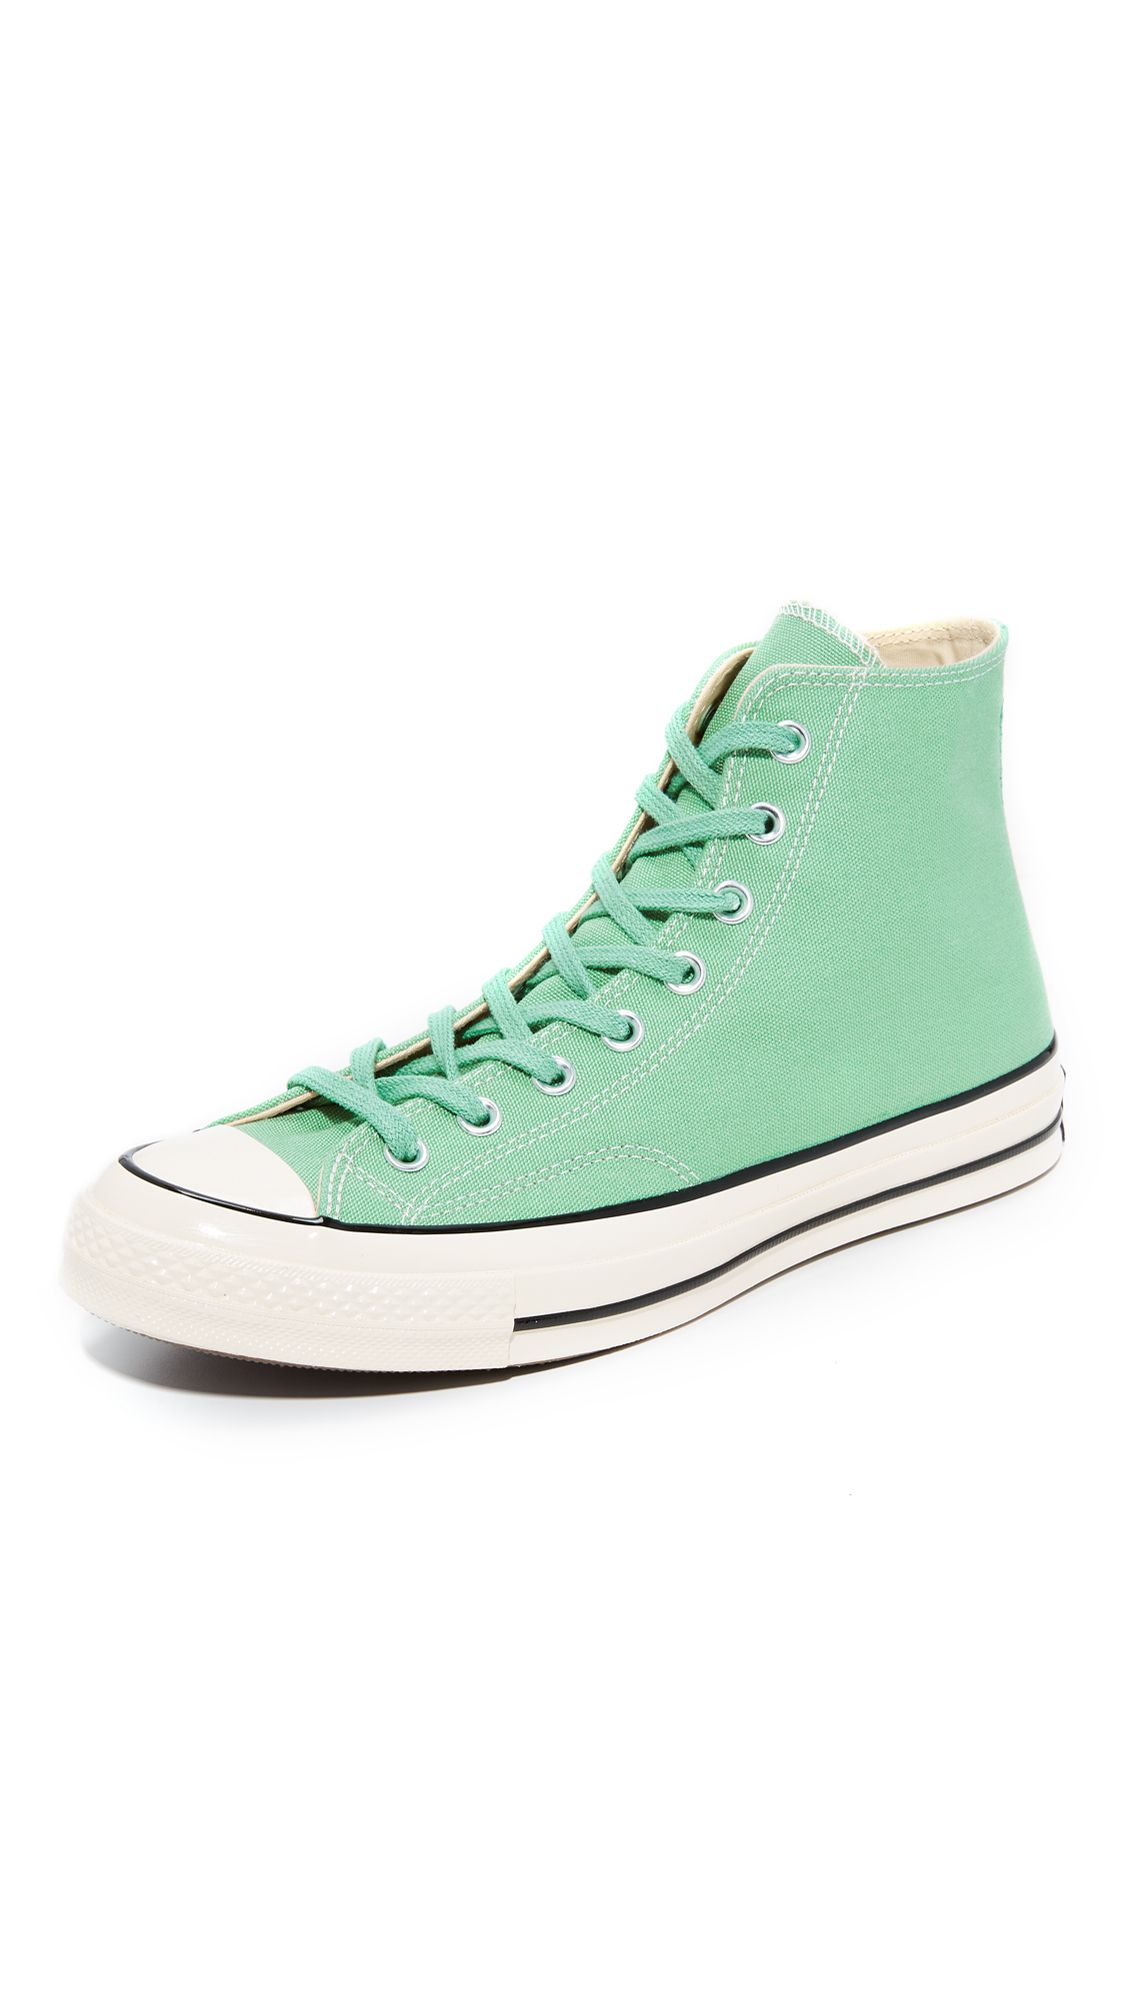 chuck taylor converse shoes 70s iconic women s halloween